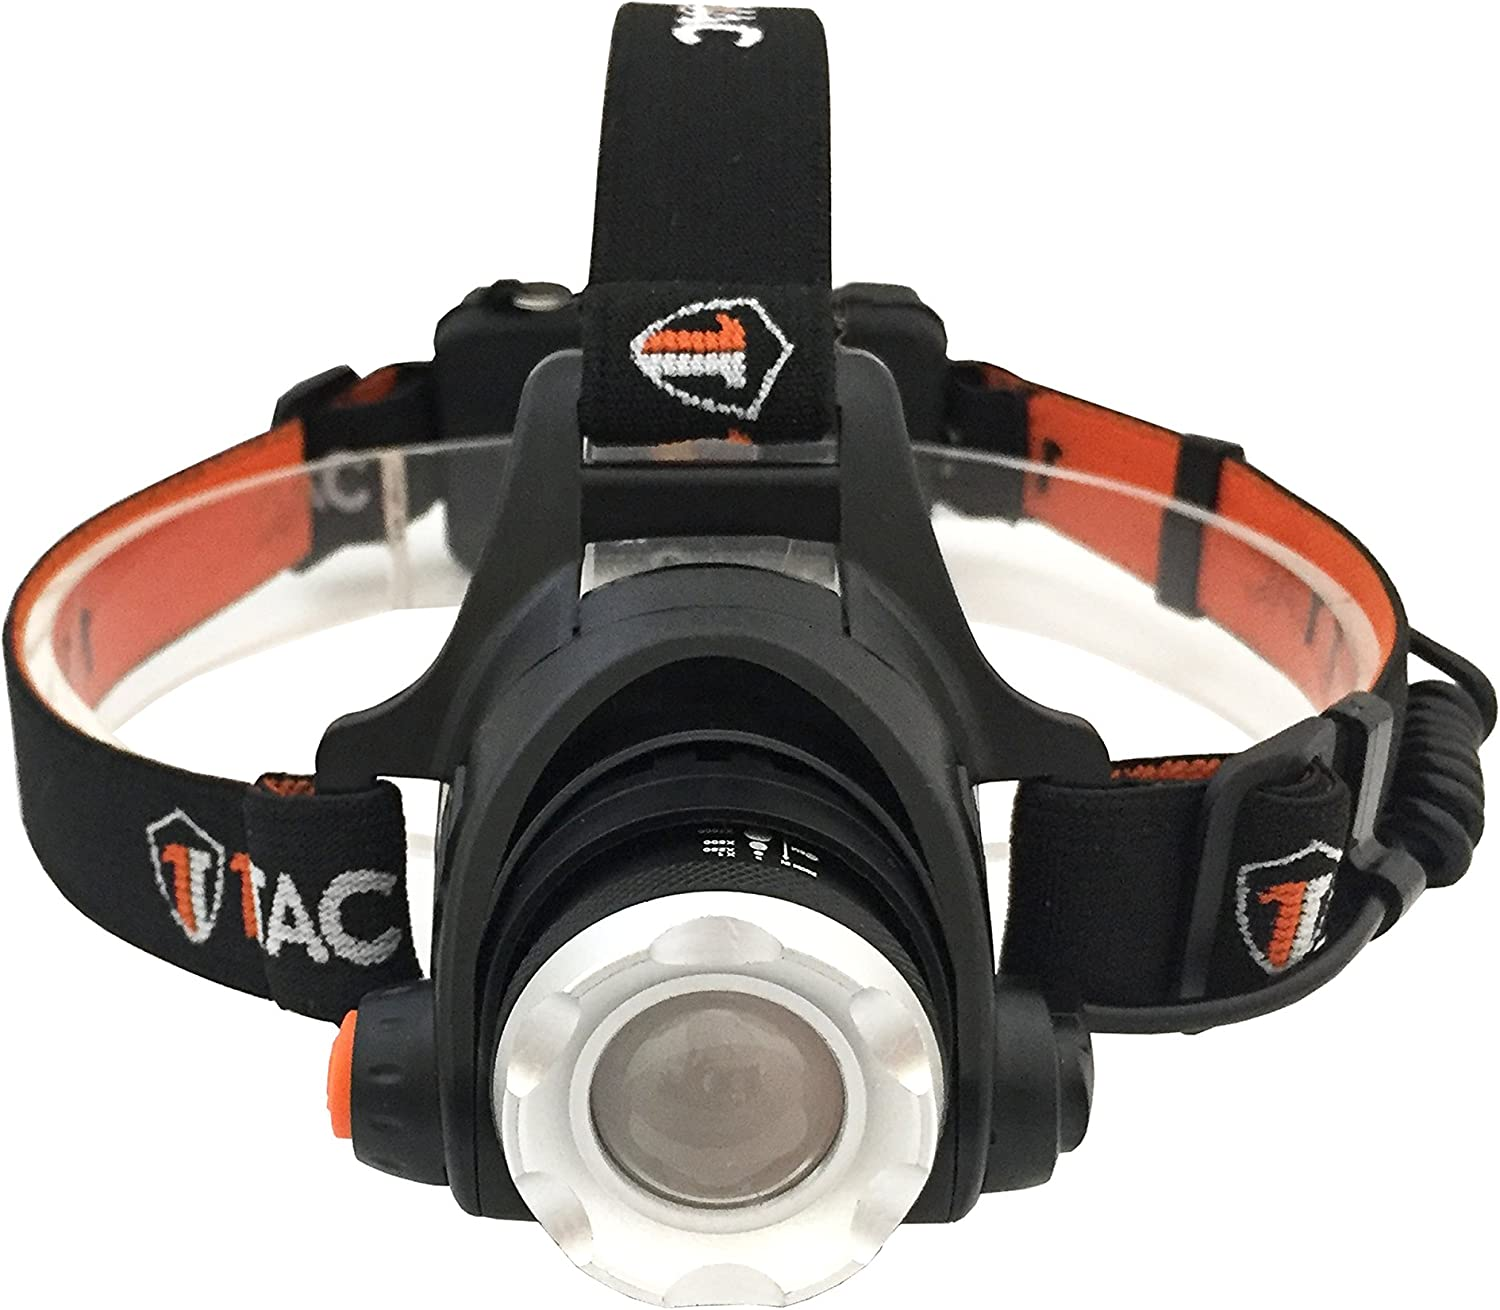 This is an image of a headlamp with orange and black-colored band, lens facing forward.